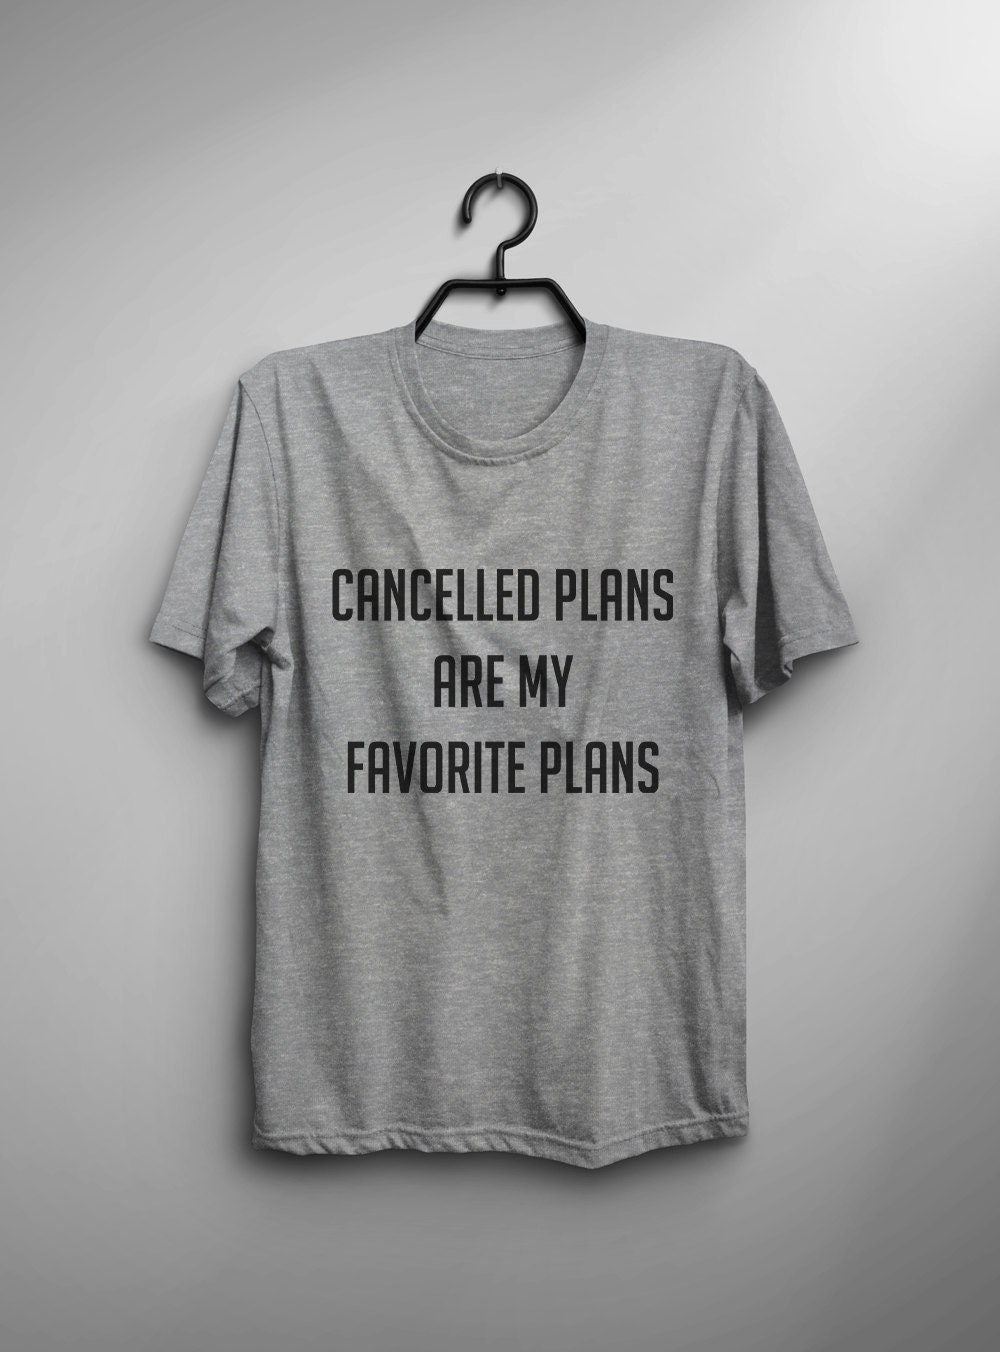 Design your own t-shirt hamilton - Cancelled Plans Are My Favorite Plans Funny Tshirts For Teen Girl Women Graphic Tee Friend Coworker Gift For Boss Print Mens Womens Tshirt